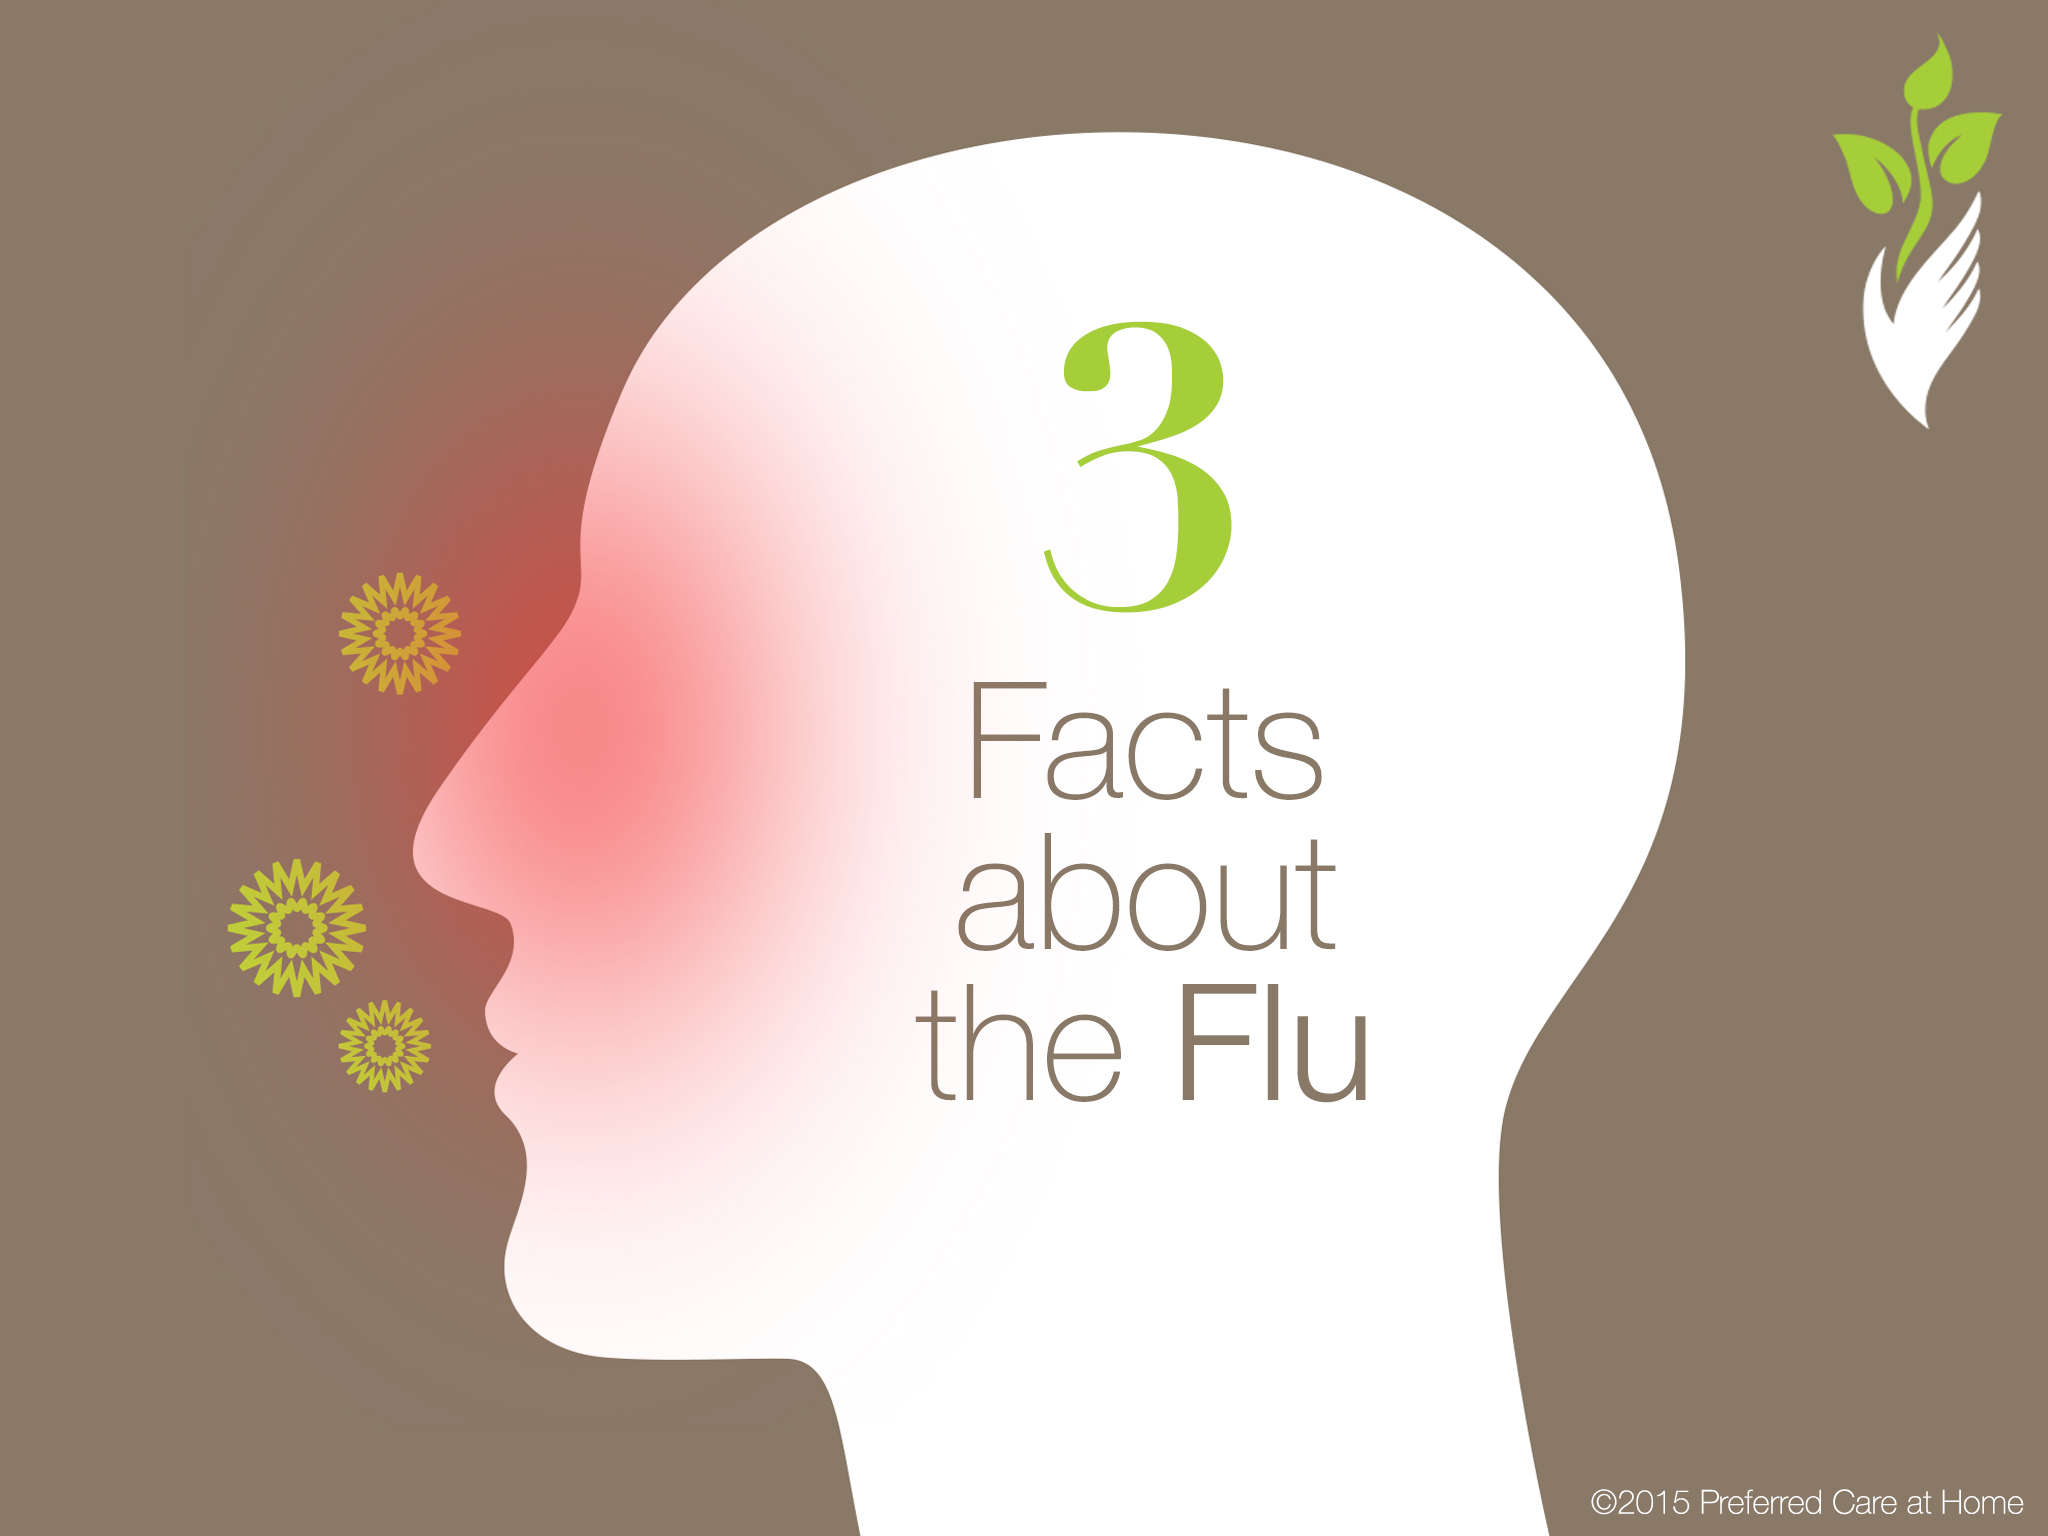 Know the Facts About the Flu